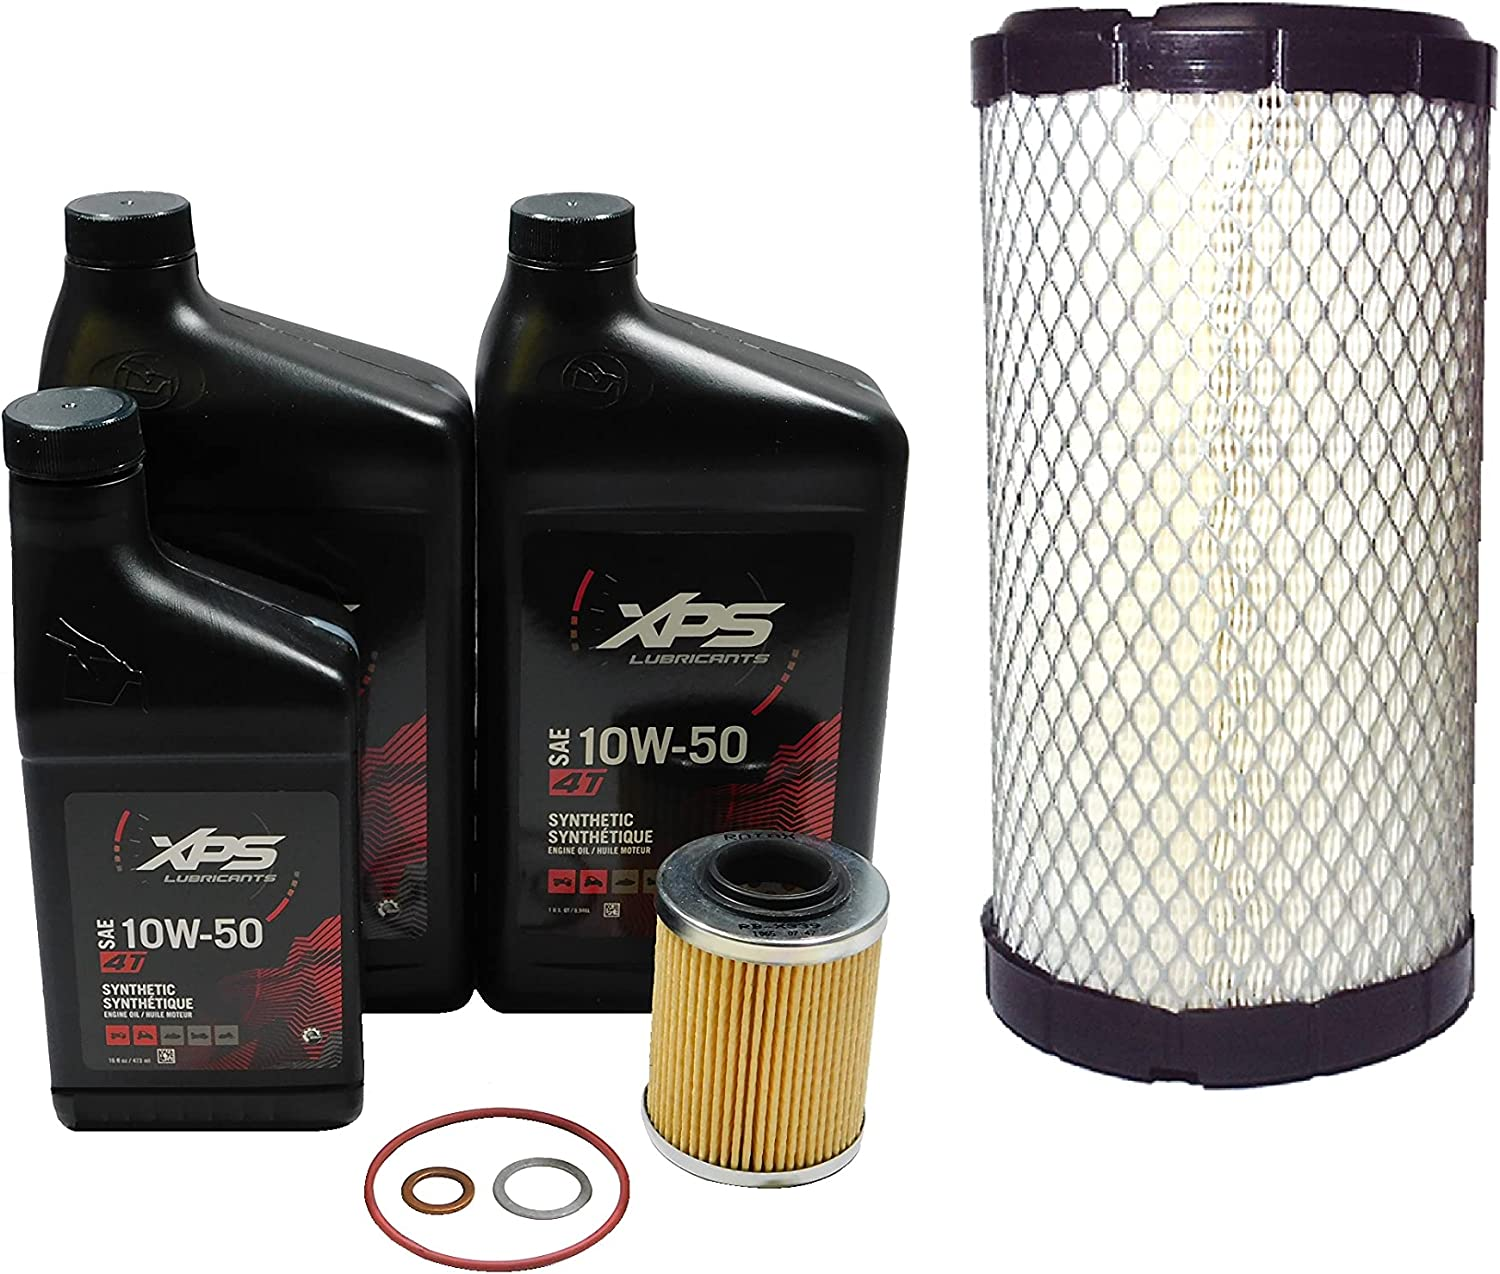 2019-2021 Can-Am Maverick Year-end annual account Trail 1000 Service Kit C106 OEM Spasm price